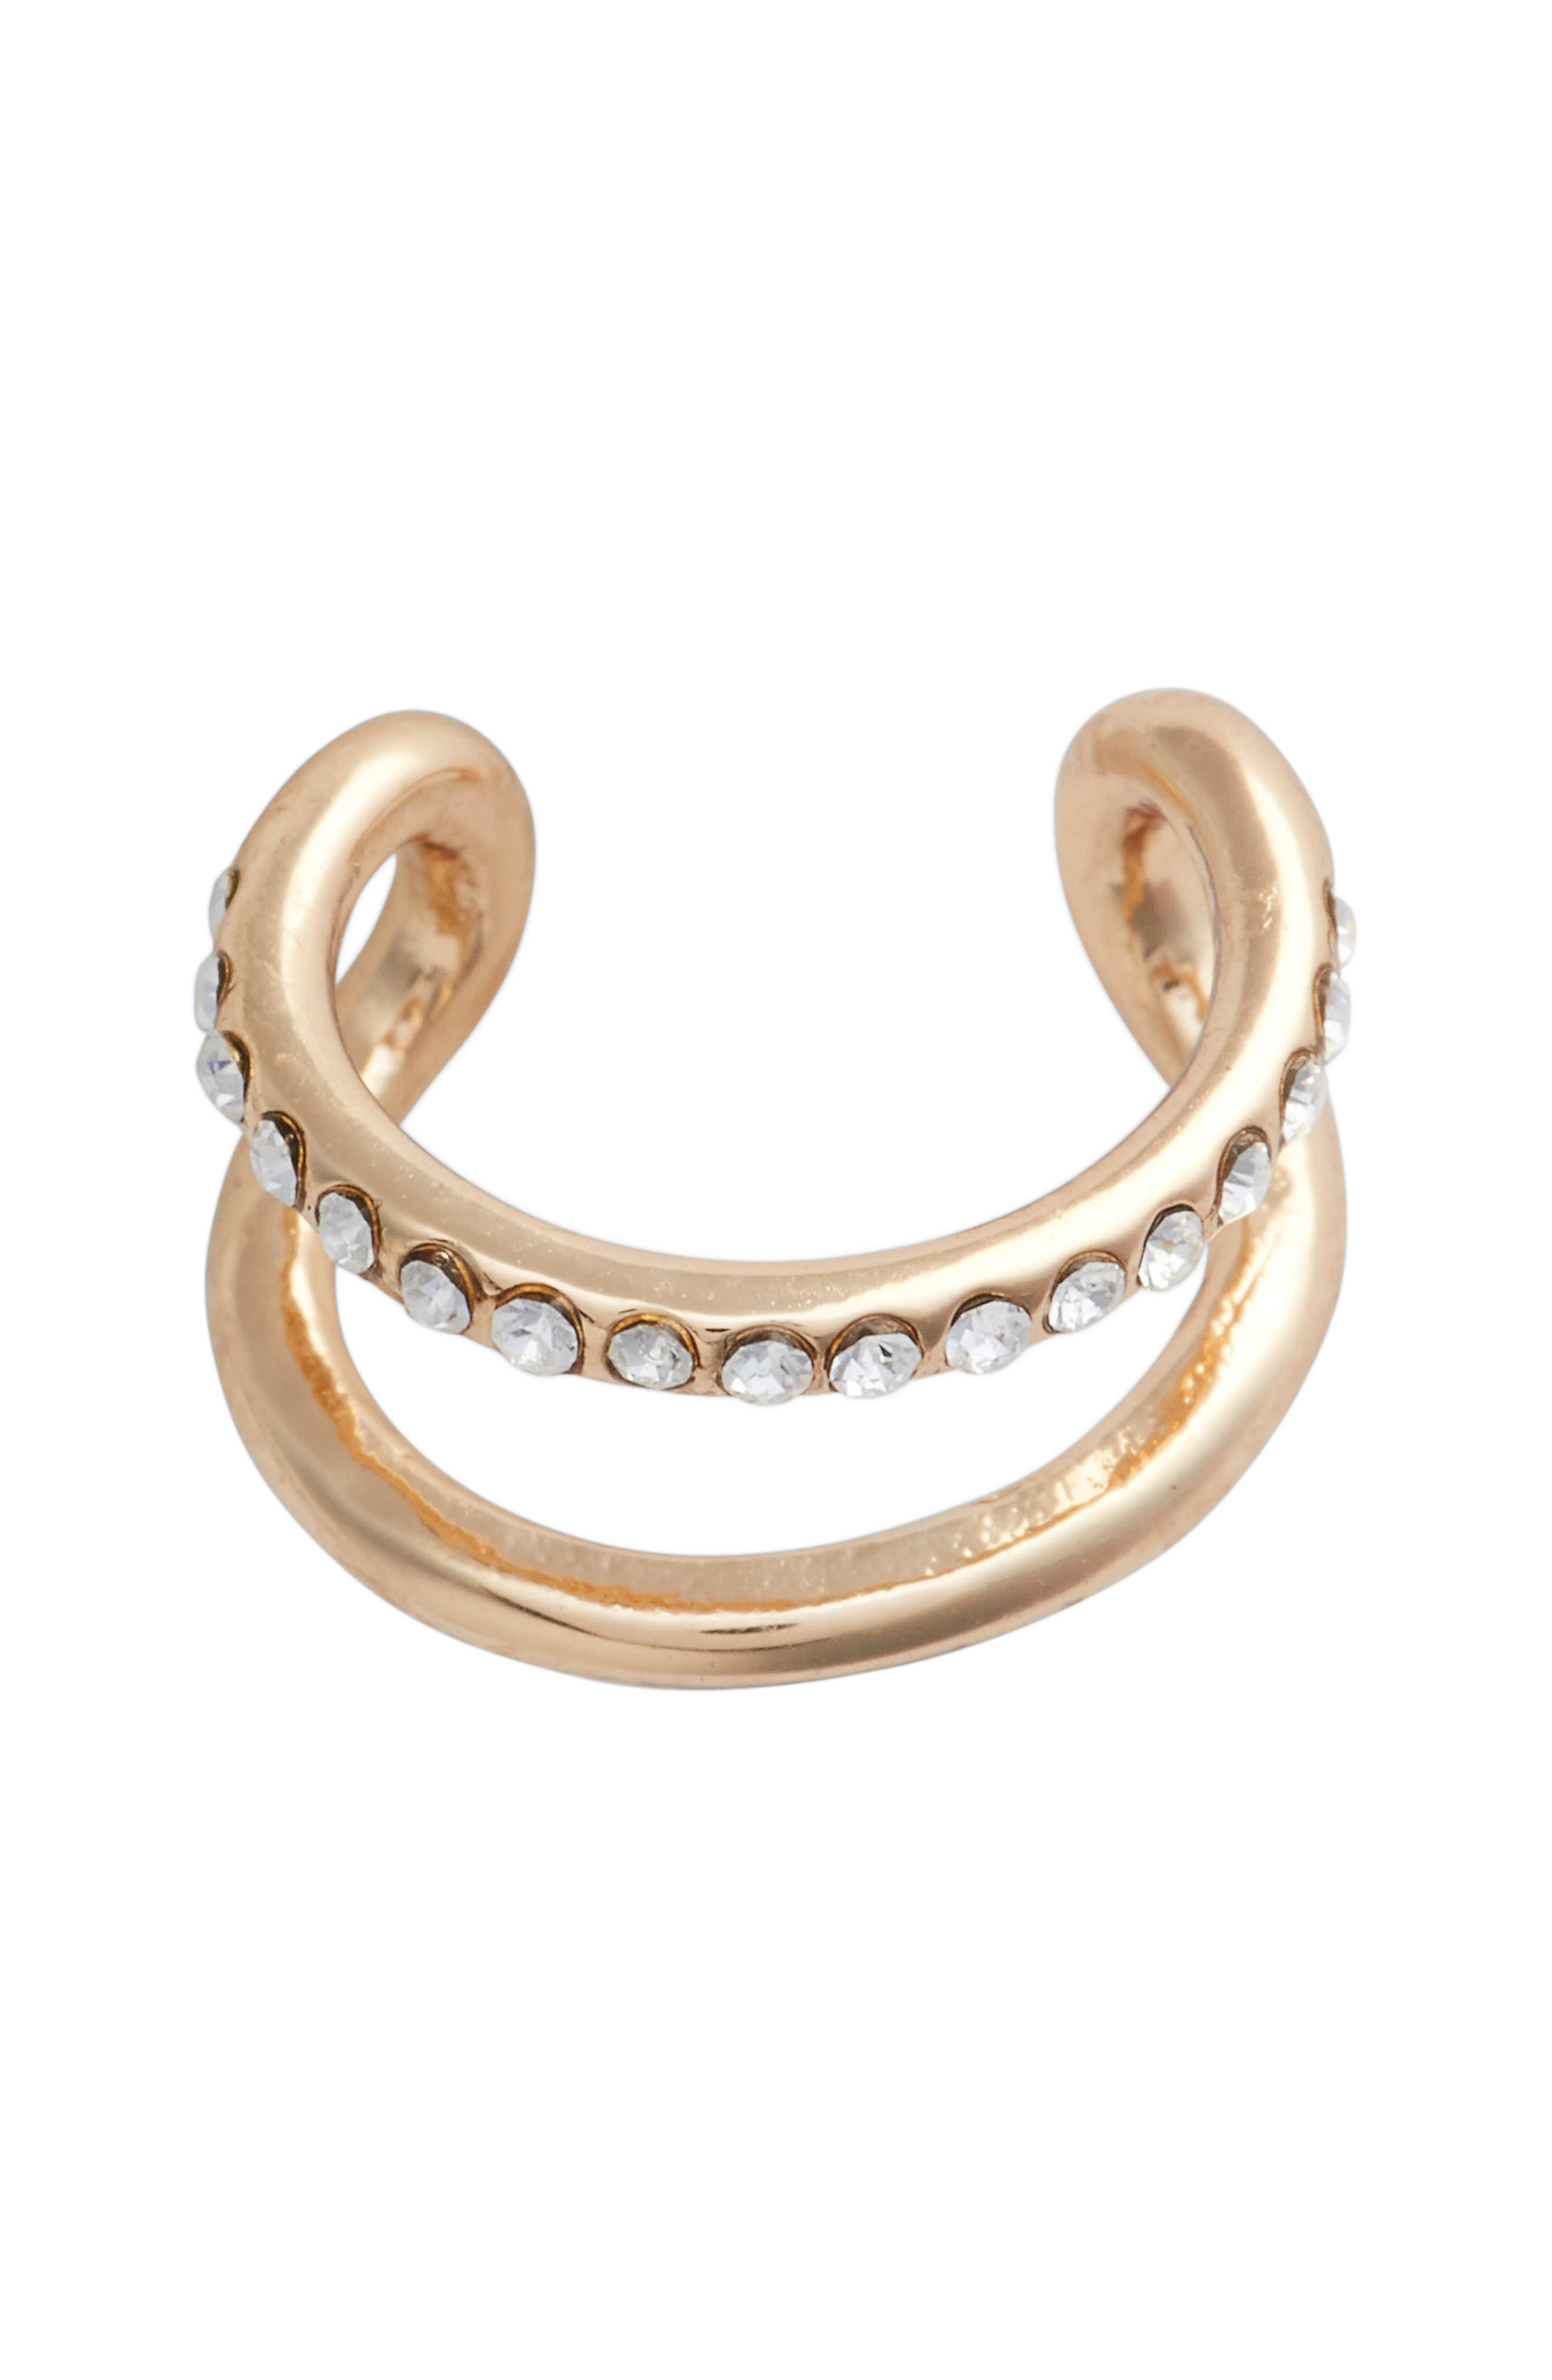 UNCOMMON JAMES BY KRISTIN CAVALLARI, Killer Queen Ear Cuff, Main thumbnail 1, color, GOLD